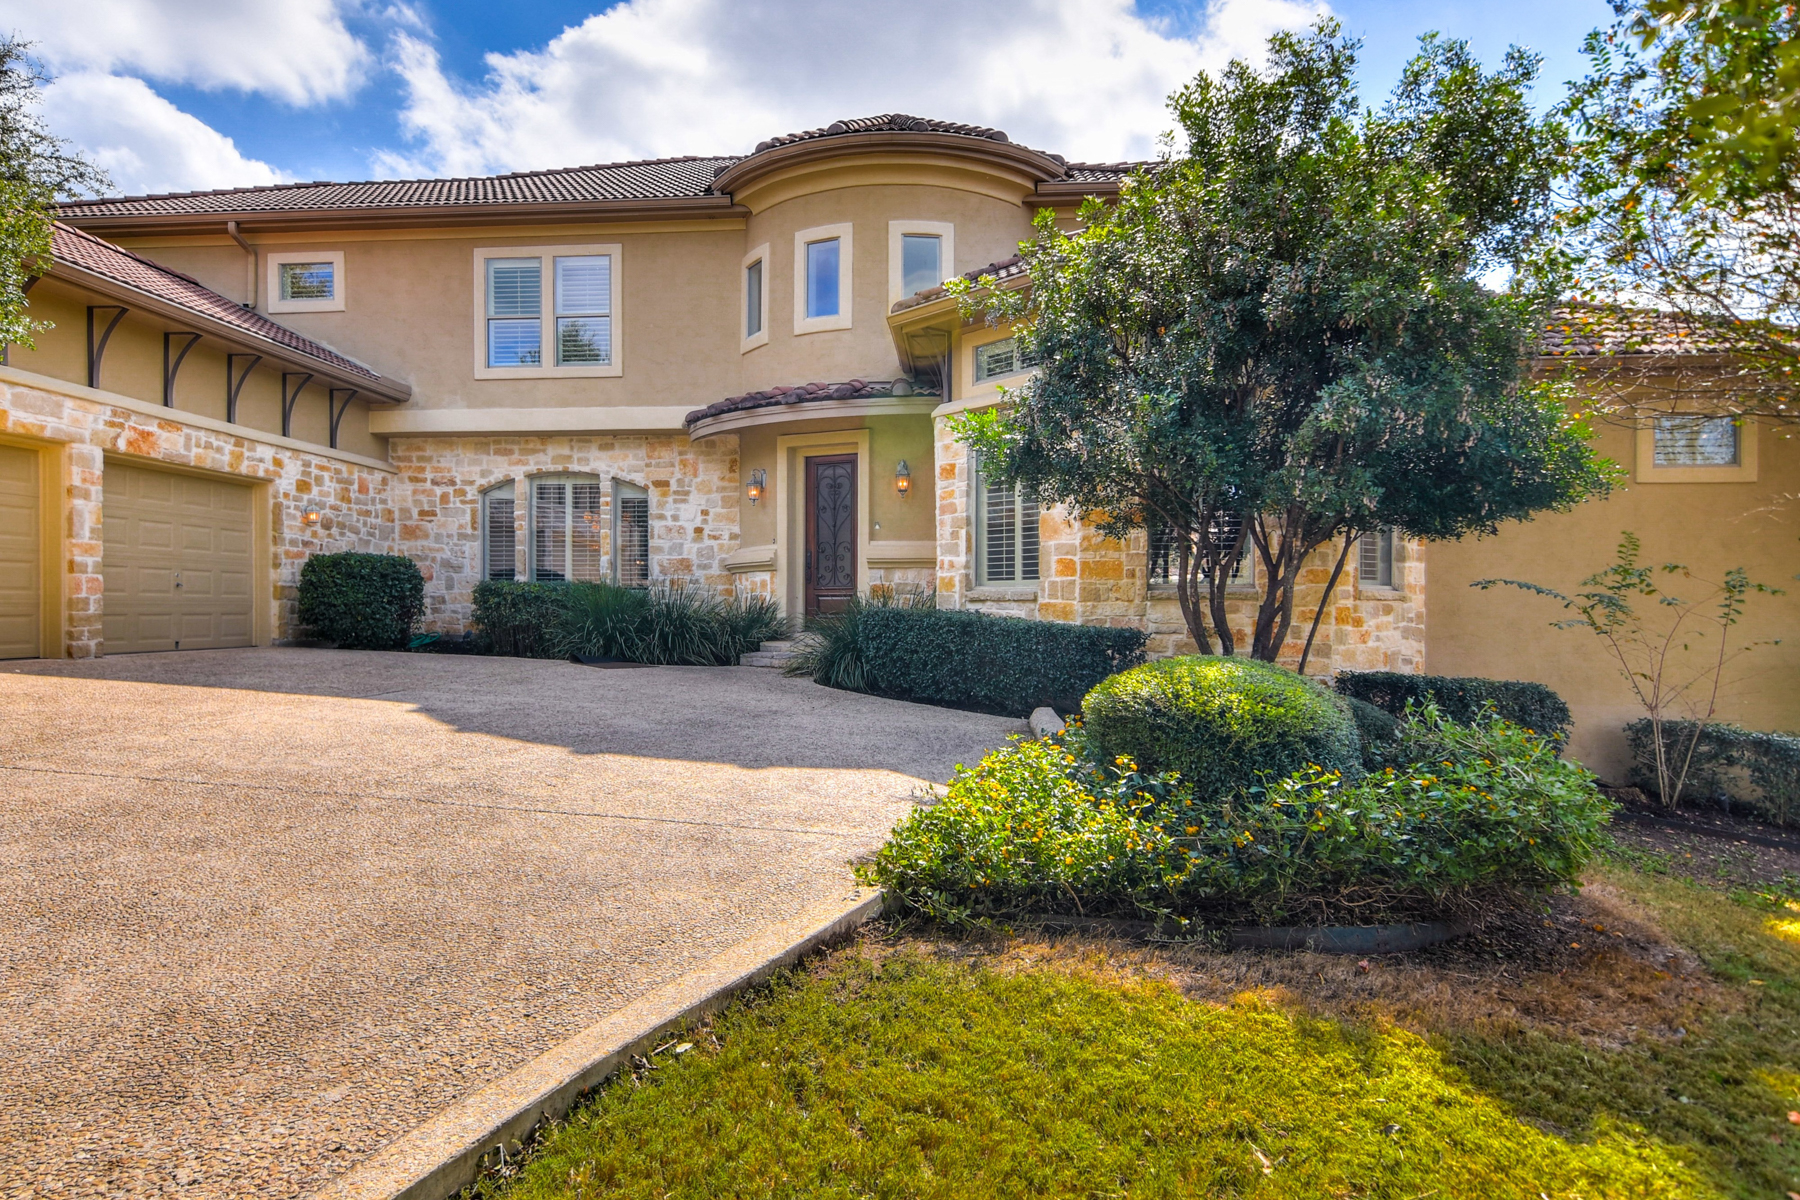 Single Family Home for Sale at Impeccable Dominion Home 8 Legends Ct San Antonio, Texas 78257 United States